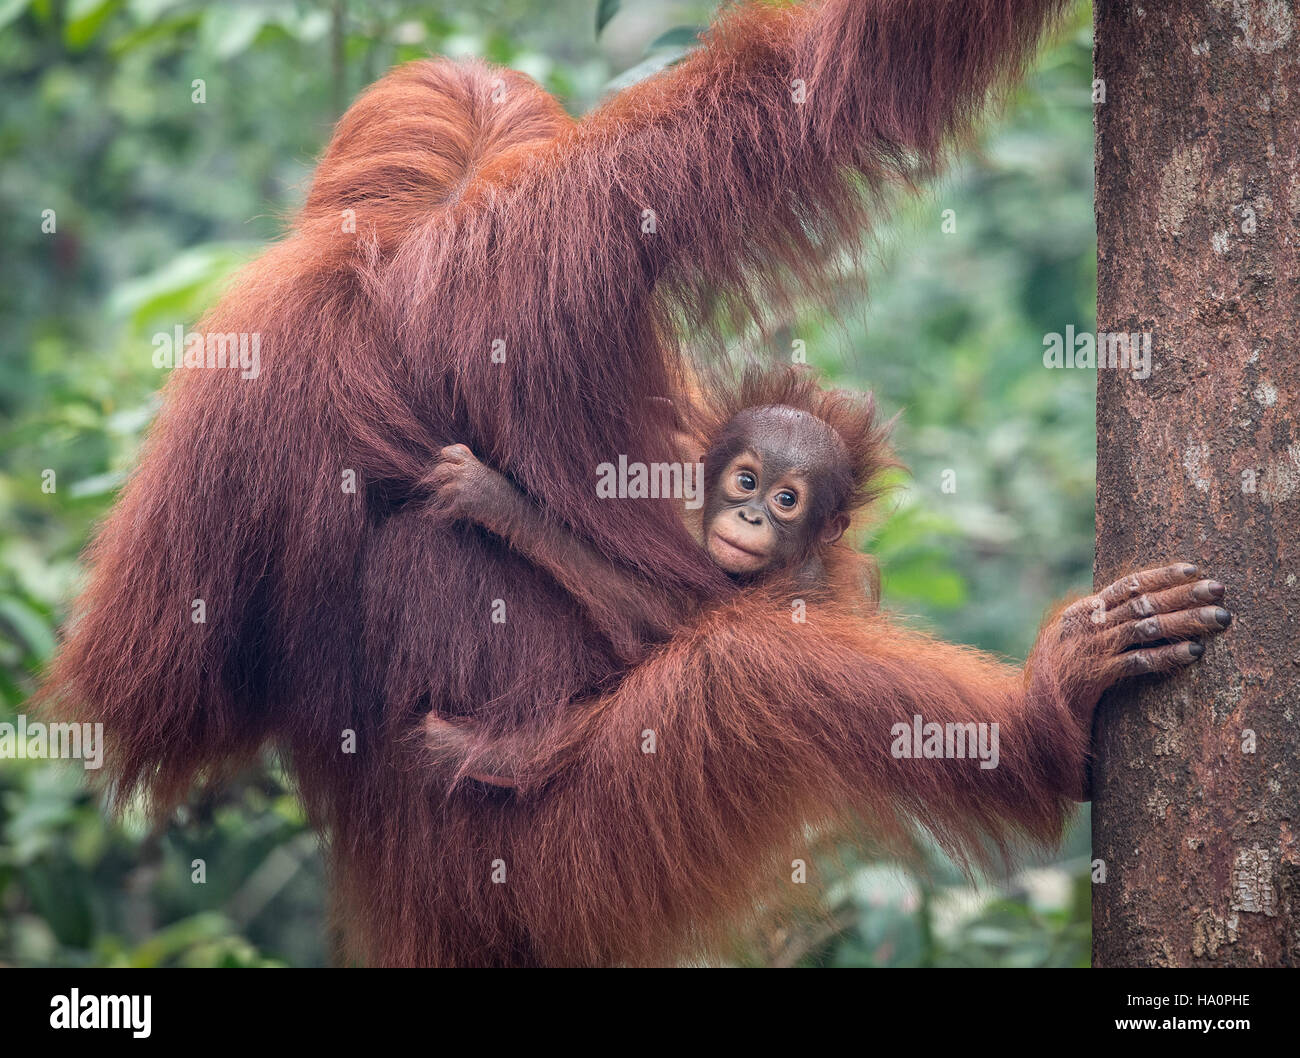 Bornean orangutan mother and baby - Stock Image